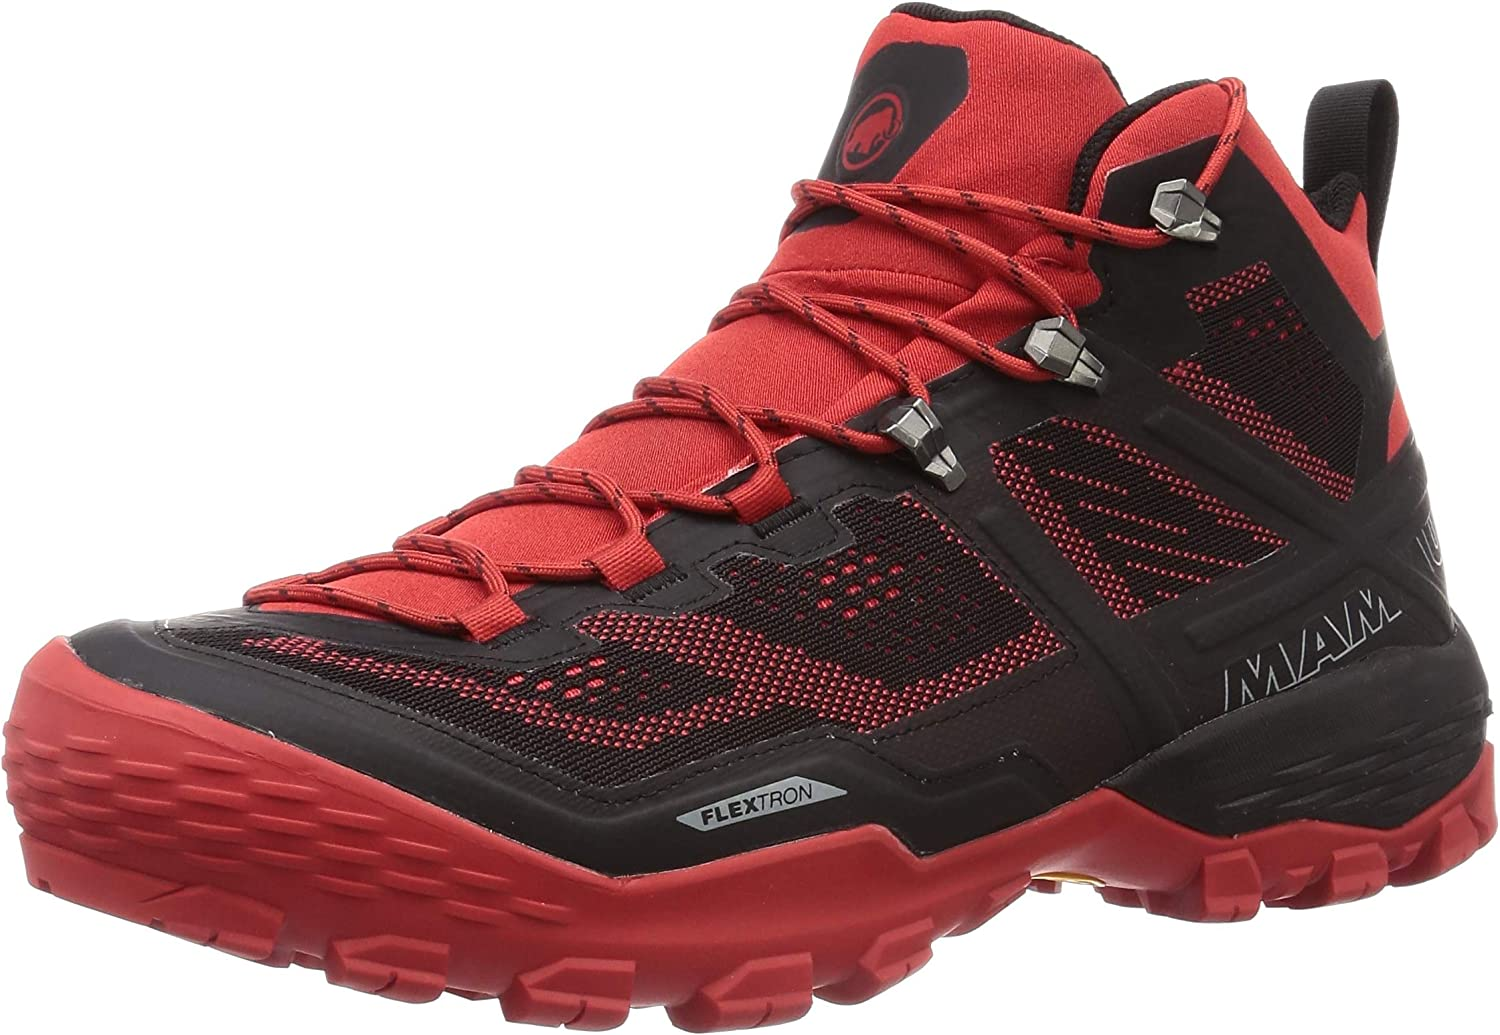 Mammut Hollow Our shop most popular Boot Advanced GTX Mid Large-scale sale Mountaineering Boots